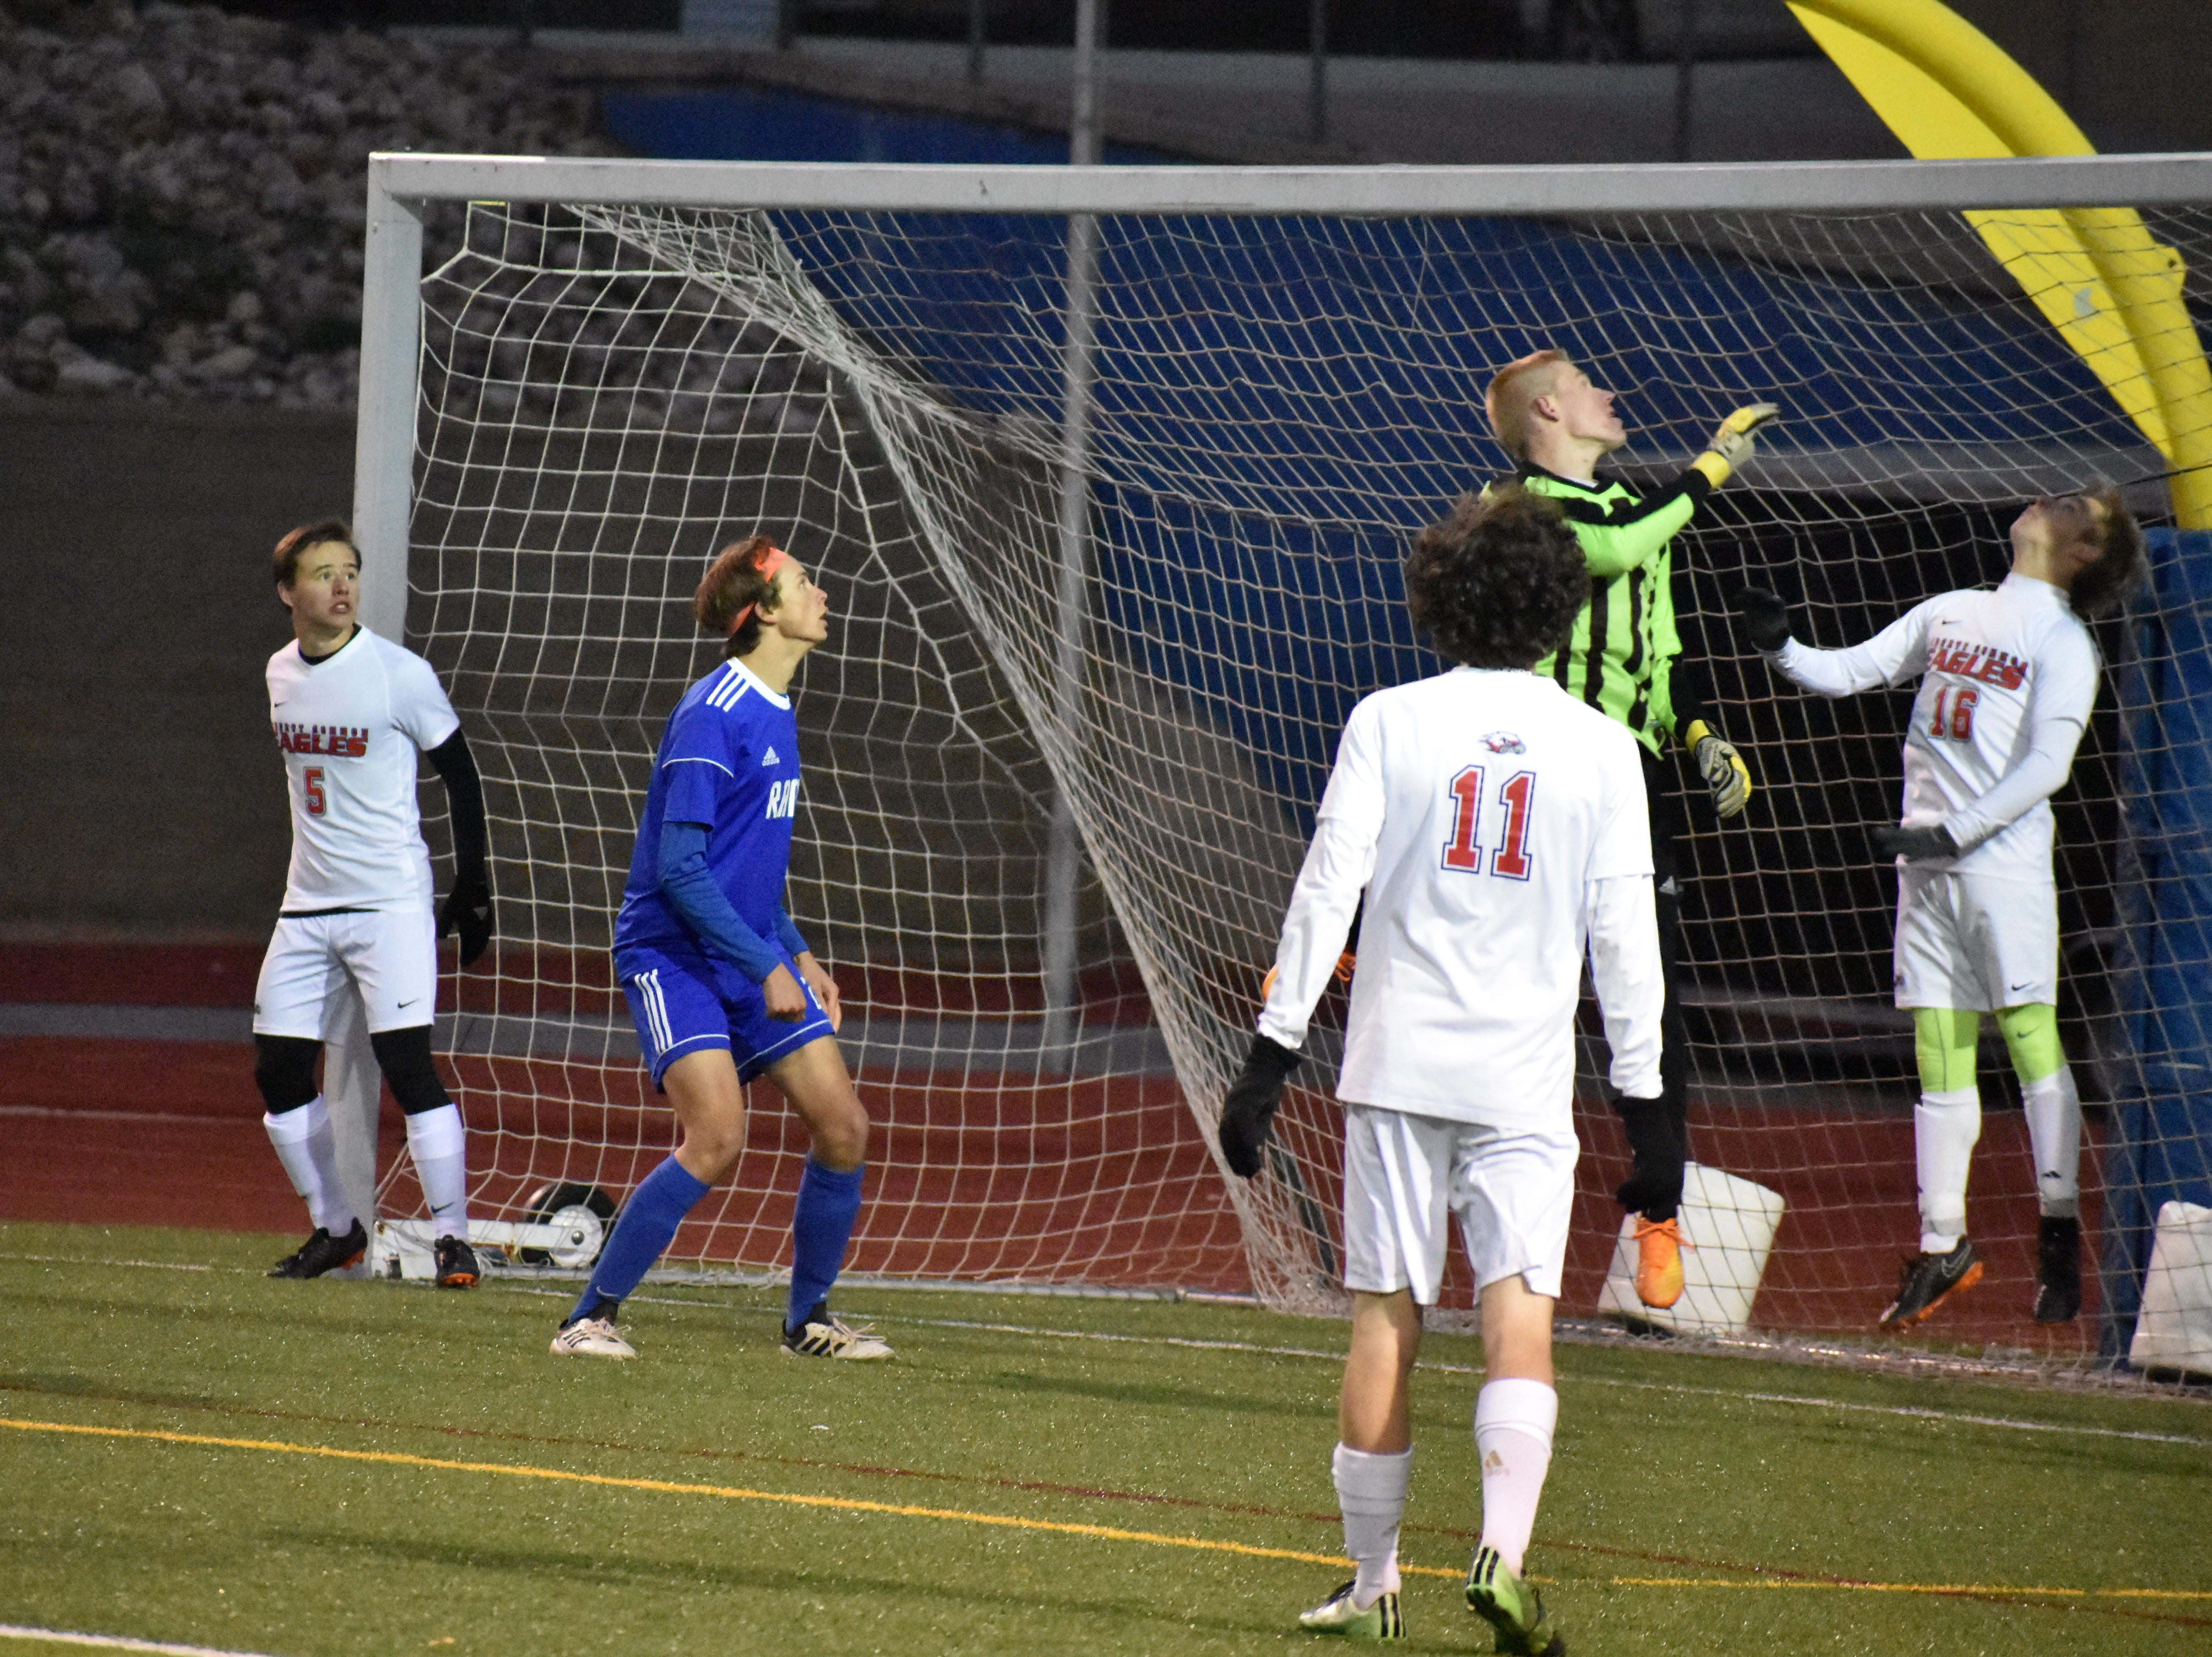 Liberty Common goalie Michael Bradley watches a shot sail over the net during the Eagles' win over Roaring Fork.